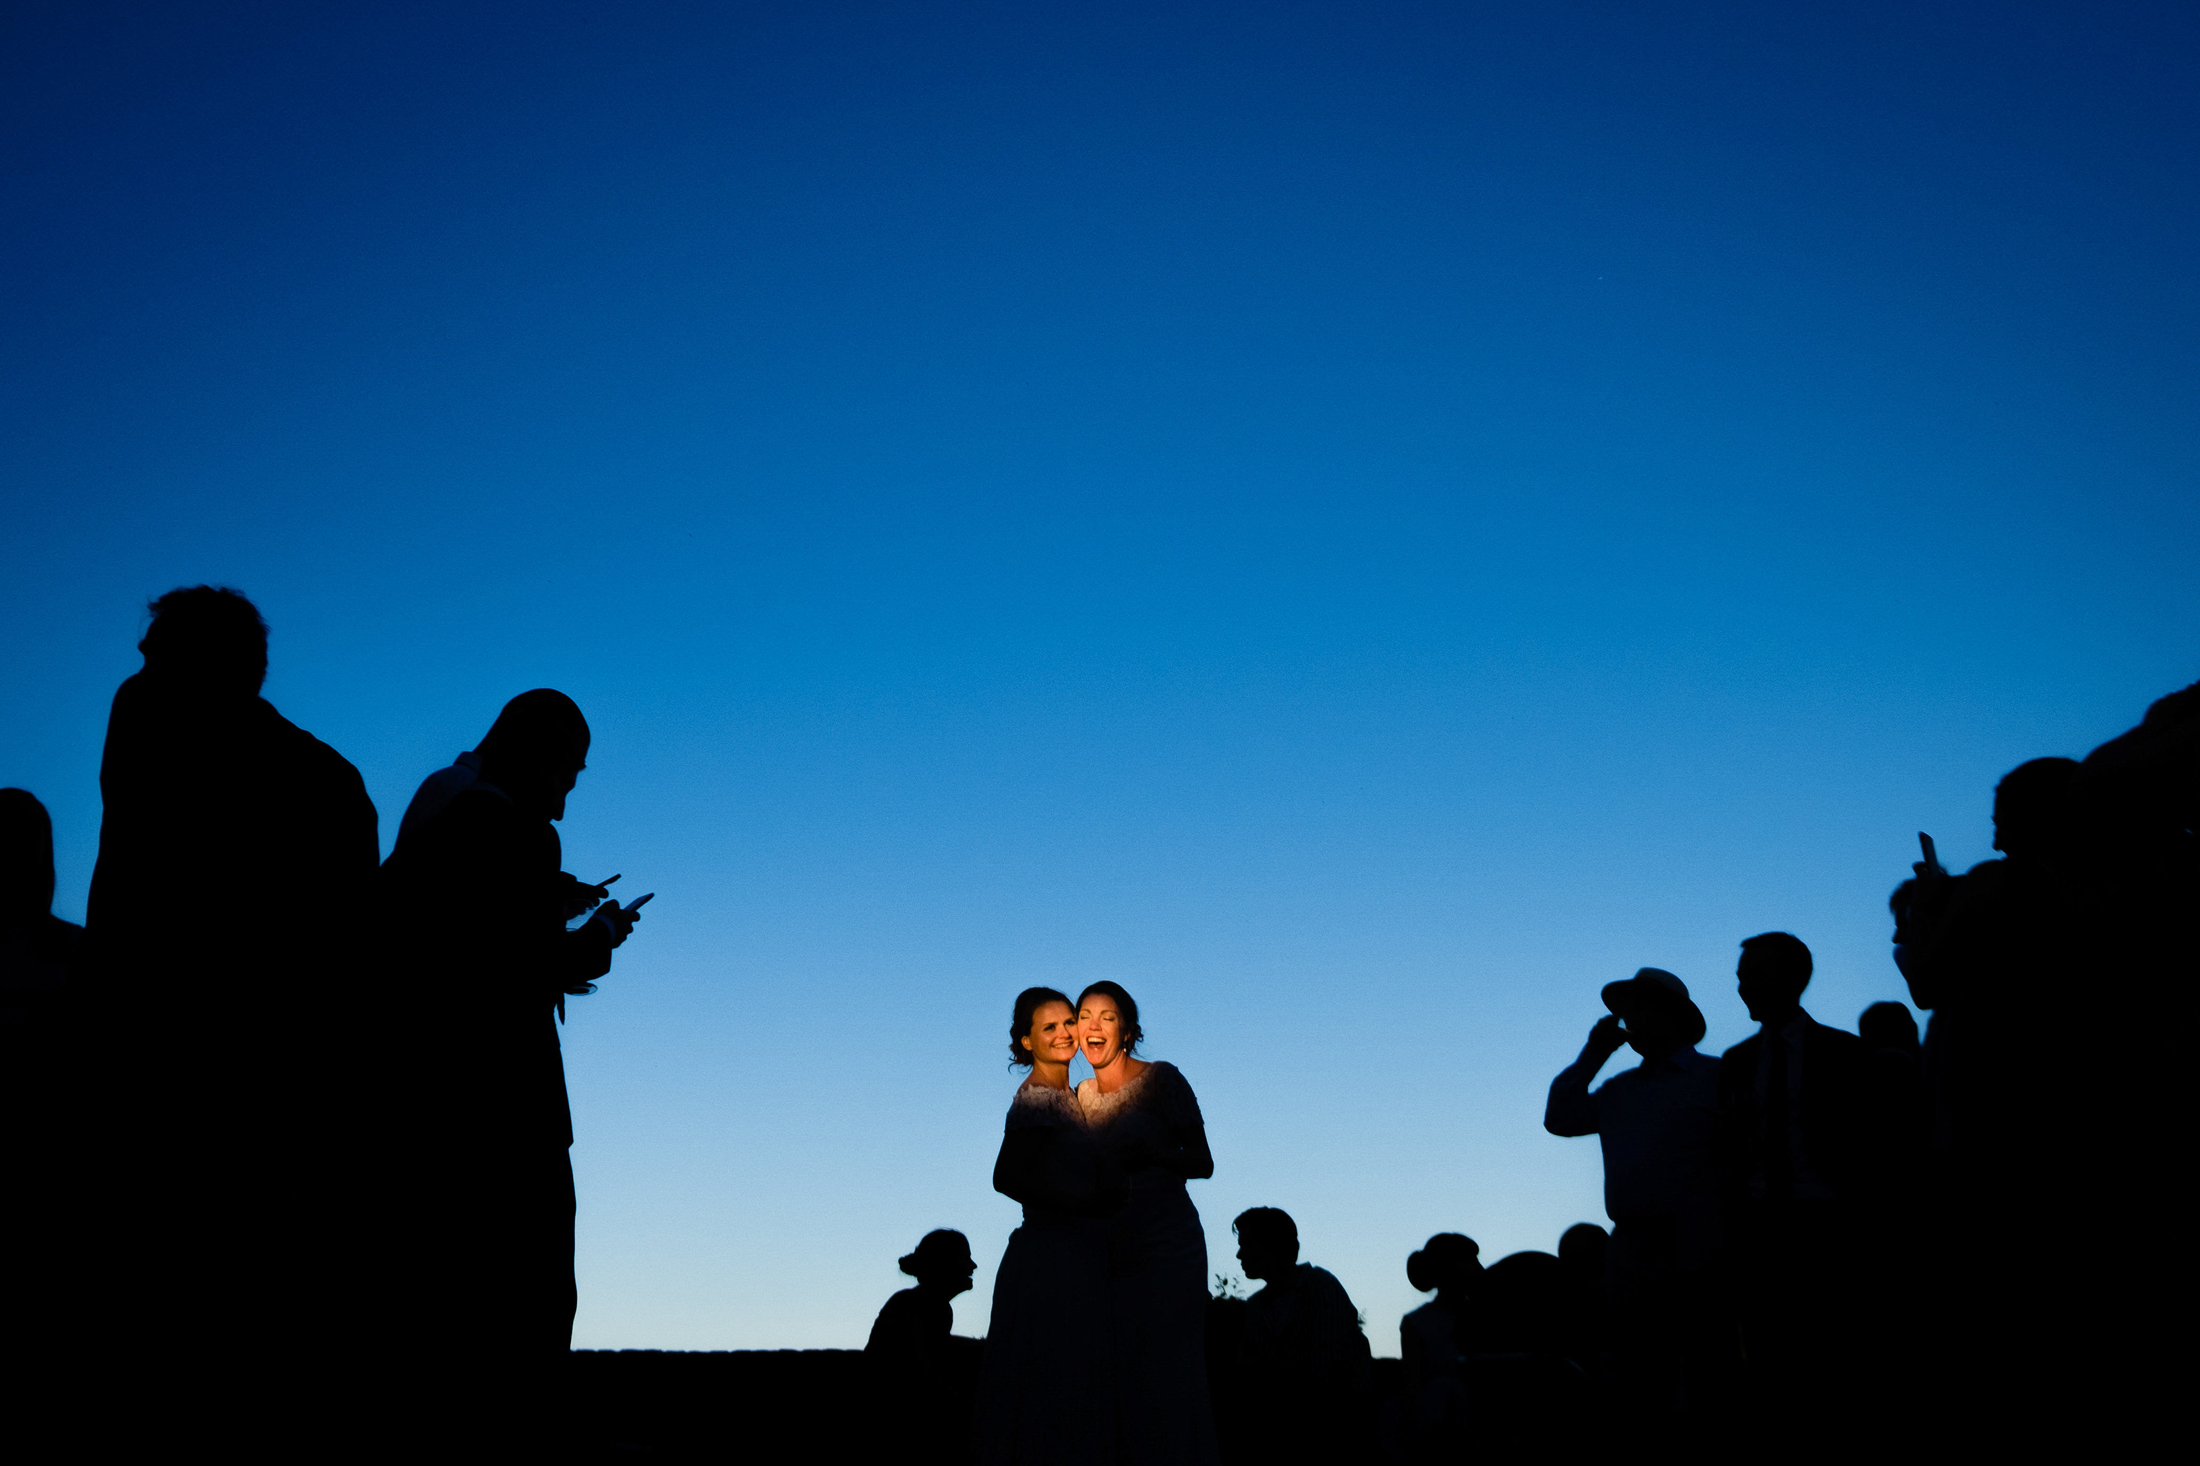 two brides, illuminated by a sunbeam, laugh as they are surrounded by their wedding guests in silhouette. image by the best wedding photographers of 2018, emma and rich